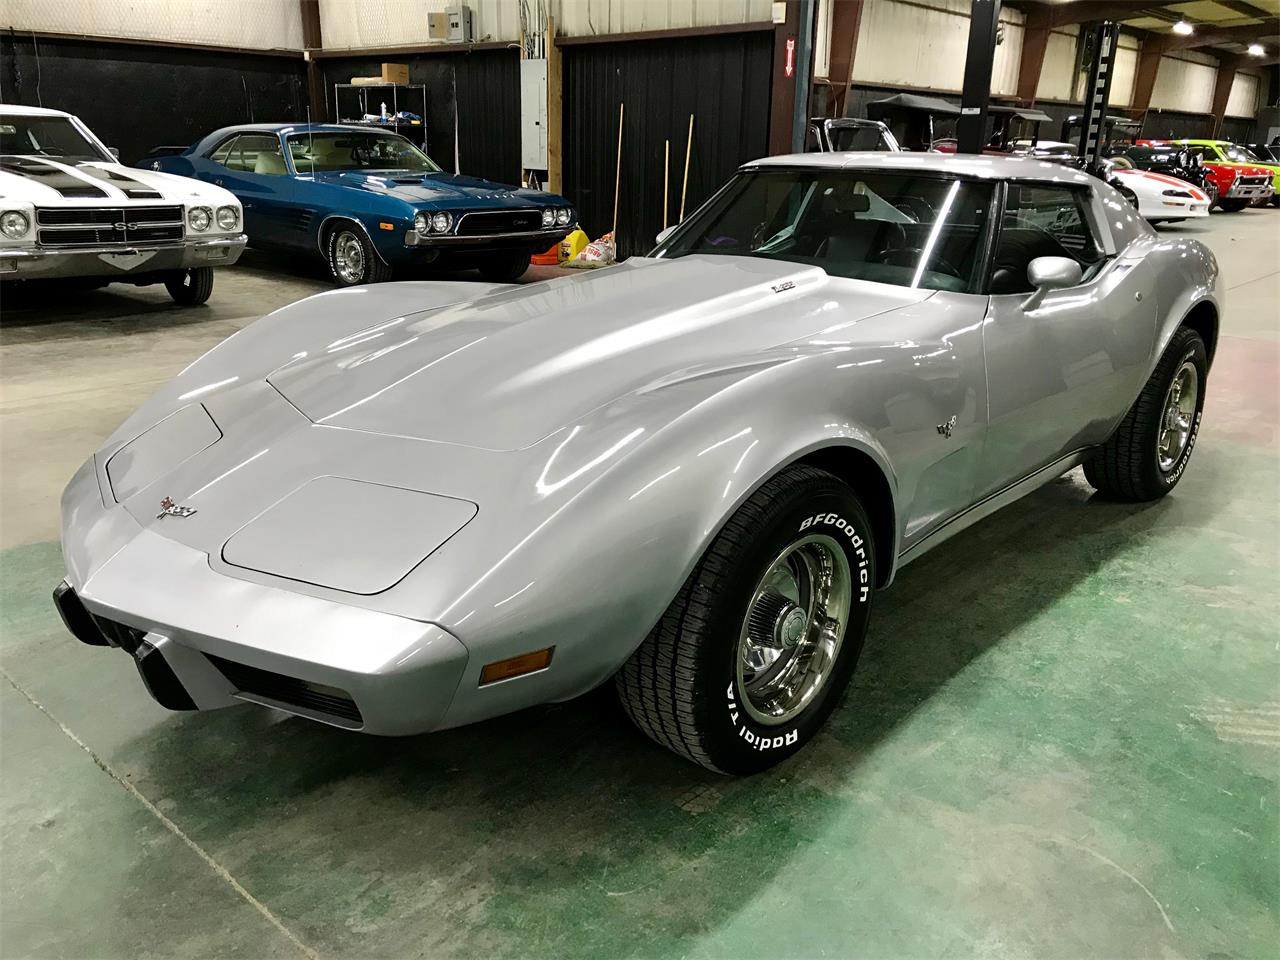 1977 Corvette For Sale >> 1977 Chevrolet Corvette For Sale Classiccars Com Cc 1174365